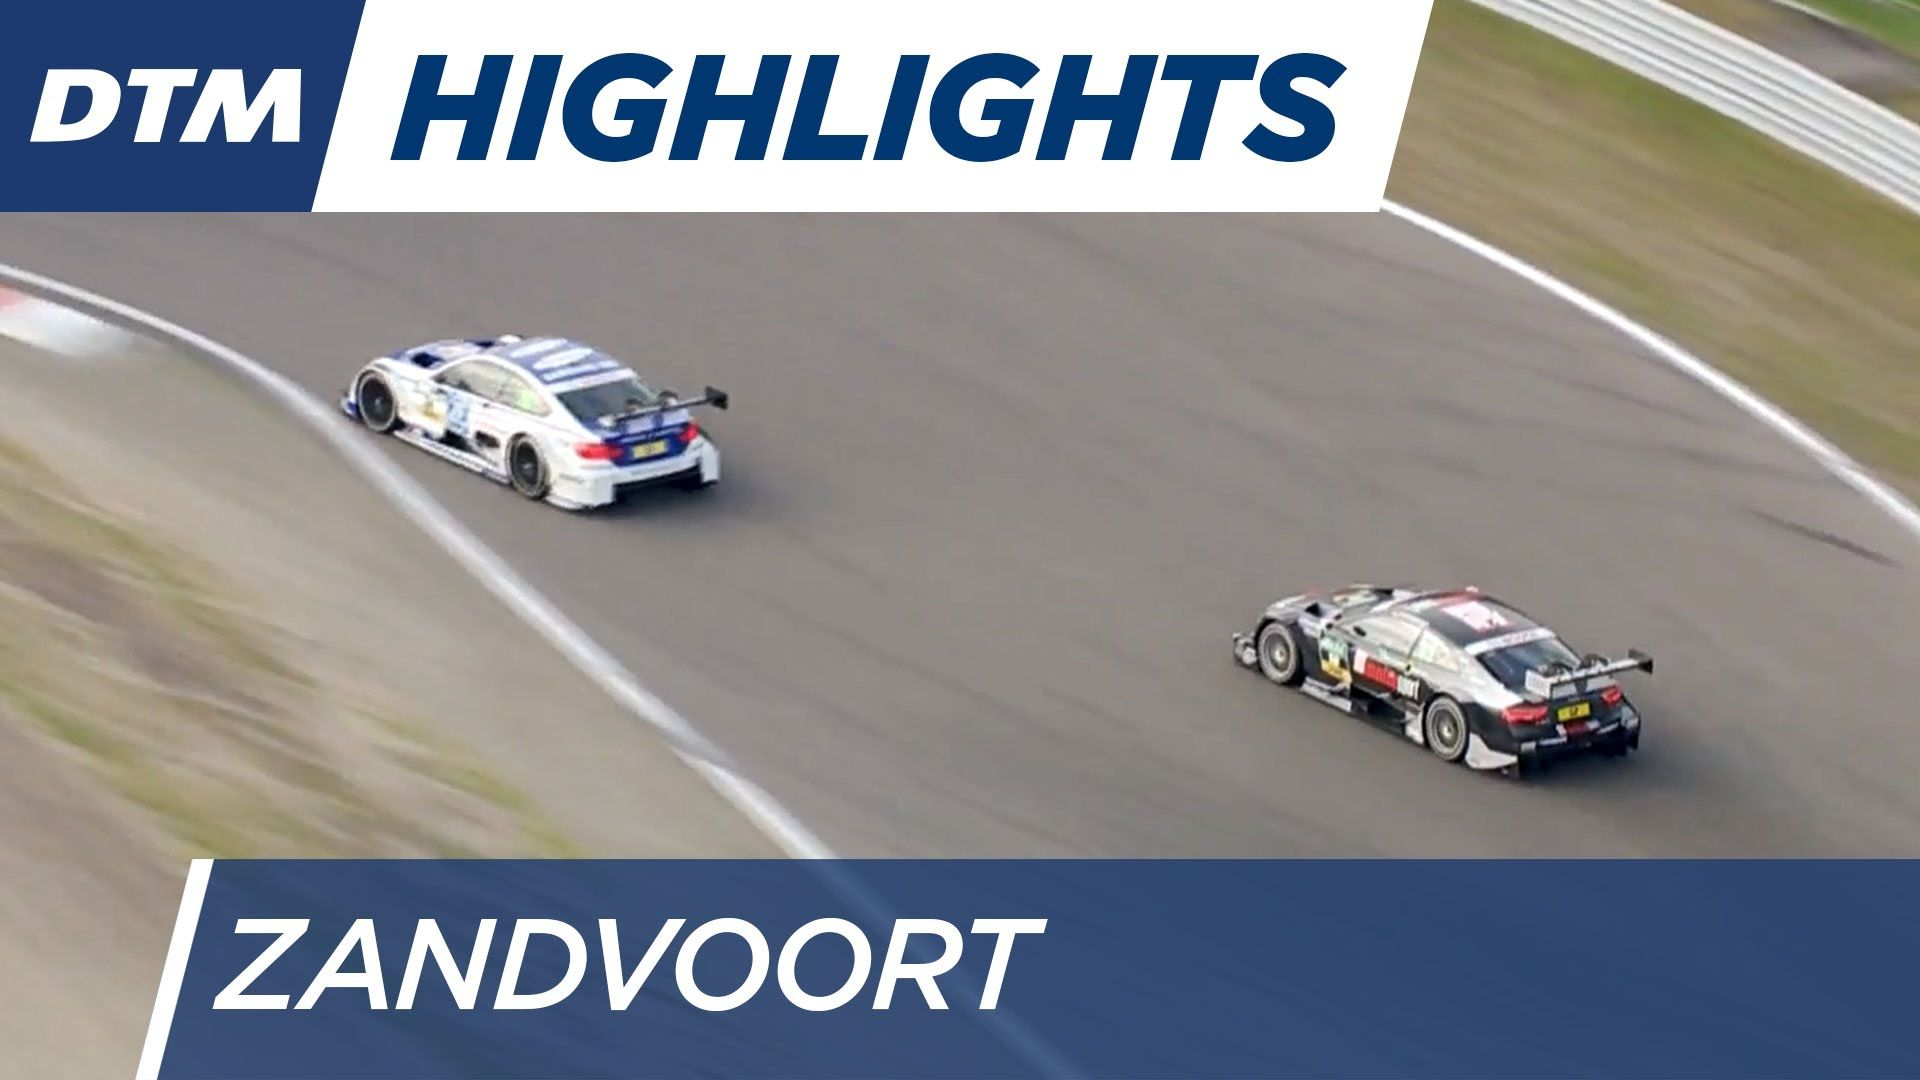 Rennen 1 Highlights - DTM Zandvoort 2016 // Veröffentlicht am 16.07.2016 Watch the highlights of the first DTM race in Zandvoort.  Subscribe to our YouTube channel (http://bit.do/subscribeDTM) and follow us on our social media platforms: